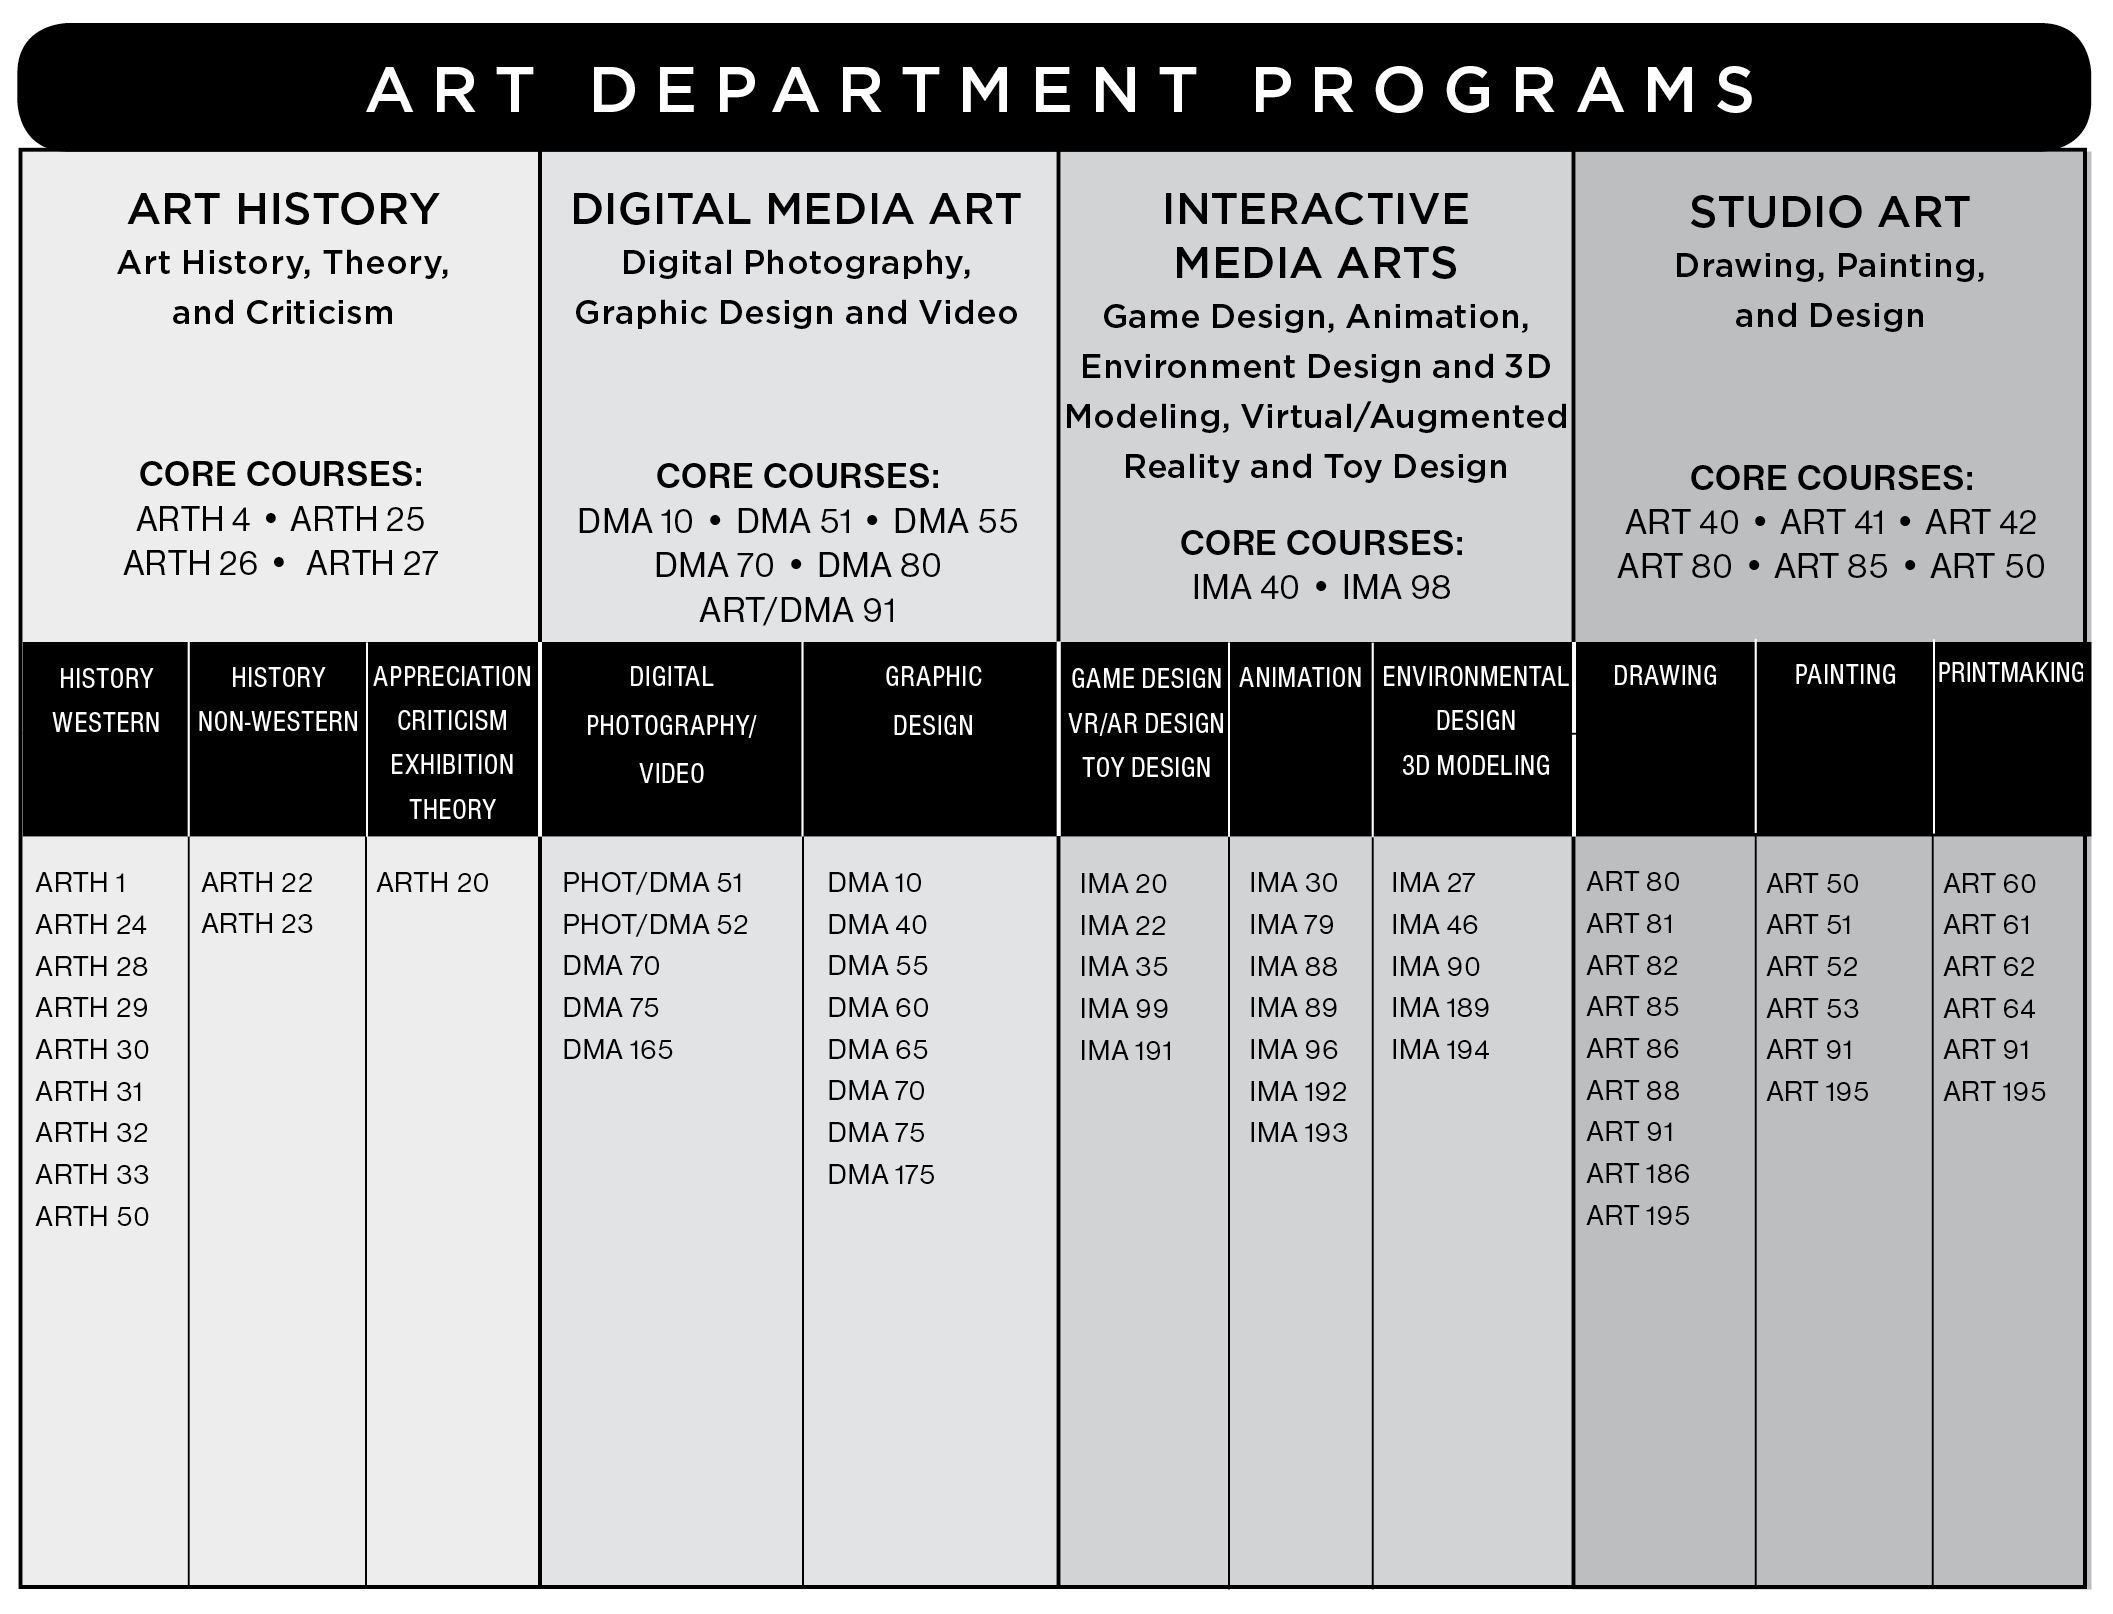 Graphical chart showing the programs and courses in the IVC art department. There are three categories: Art History, Digital Media Art, Interactive Media Arts, and Studio Art. Art History includes Art History, Theory, and Criticism, and Applied Museum Studies. Core courses include ARTH 4, ARTH 25, ARTH 26, ARTH 27, and ARTH 104. Western art history courses include ARTH 1, ARTH 24, ARTH 28, ARTH 29, ARTH 30, ARTH 31, ARTH 32, ARTH 50 and ARTH 133. Non-western art history courses include ARTH 22 and ARTH 23. Appreciation, criticism, exhibition and theory courses include ARTH 20, ARTH 110, ARTH 115, ARTH 120, ARTH 125, ARTH 130, ARTH 135, ARTH 140, ARTH 145 and ARTH 168. Digital Media Art includes Digital Photography,  Graphic Design and Video. Core courses include DMA 10, DMA 51, DMA 55, DMA 70, DMA 80, and ART/DMA 191. Digital photography/video courses include PHOT/DMA 51, PHOT/DMA 52, DMA 70, DMA 75, DMA 120 and DMA 165. Graphic design courses include DMA 10, DMA 55, DMA 65, DMA 120, DMA 140, DMA 160, DMA 170, and DMA 175. Interactive Media Arts includes Game Design, Animation, Environment Design and 3D Modeling, Virtual/Augmented Reality and Toy Design. Core courses include IMA 40 and IMA 98. Game design, VR/AR design and toy design courses include IMA 20, IMA 22, IMA 35, IMA 99 and IMA 191. Animation courses include IMA 30, IMA 88, IMA 89, IMA 96, IMA 179, IMA 192, and IMA 193. Environmental design and 3D modeling courses include IMA 46, IMA 189, IMA 190, and IMA 194. Studio Art includes Drawing, Painting, and Design. Core courses include ART 40, ART 41, ART 42, ART 80, ART 85 and ART 50. Drawing courses include ART 80, ART 81, ART 82, ART 85, ART 86, ART 88, ART 186, ART 191, and ART 195. Painting courses include ART 50, ART 51, ART 52, ART 53, ART 191, and ART 195. Printmaking courses include ART 60, ART 61, ART 62, ART 64, ART 195 and ART 191.